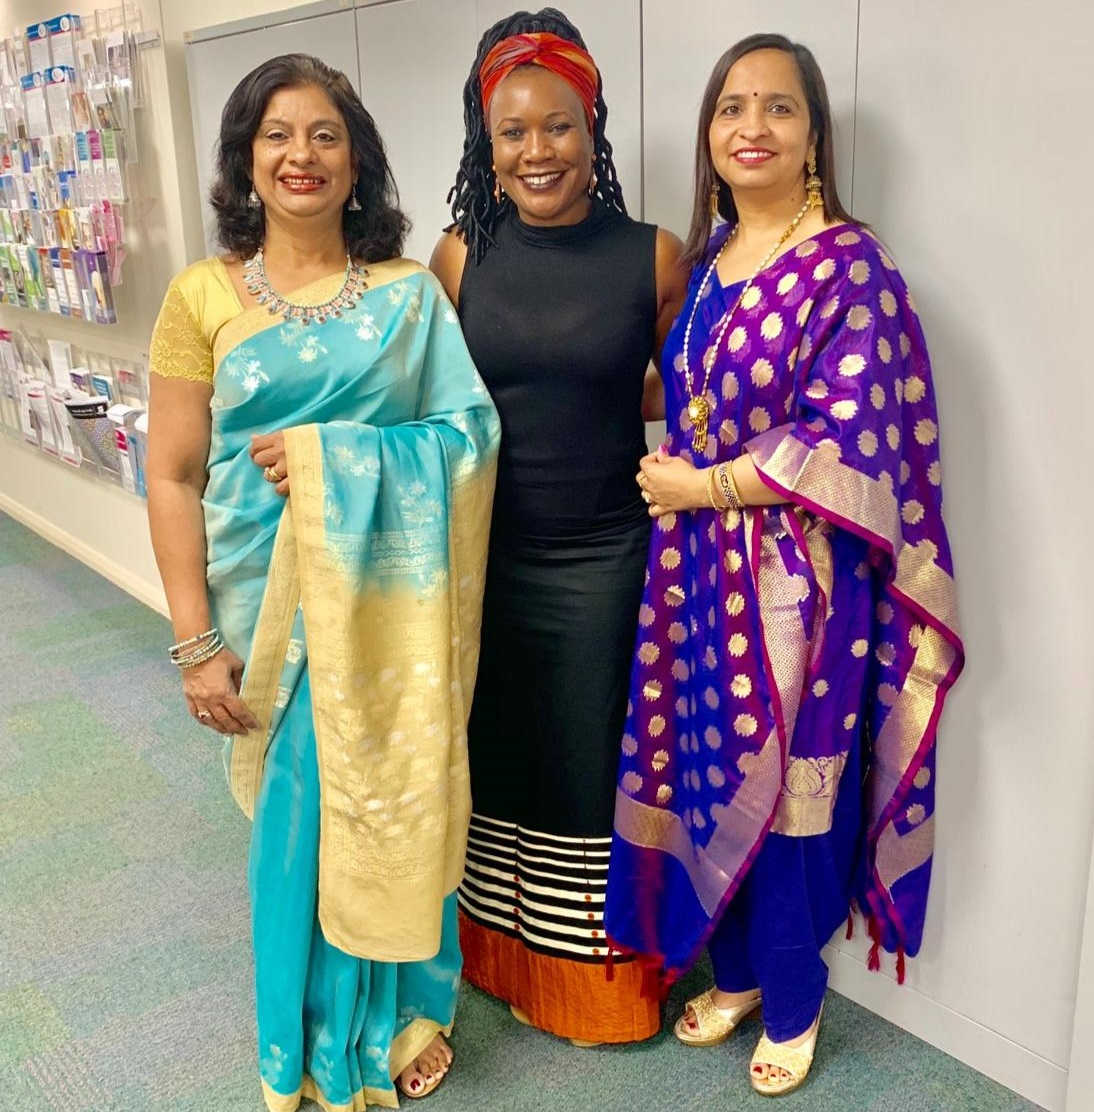 Ishar Multicultural Women's Health Services women dressed in traditional clothing. Supportive groups and activities for refugee and migrant women. Women working to promote health and wellbeing.